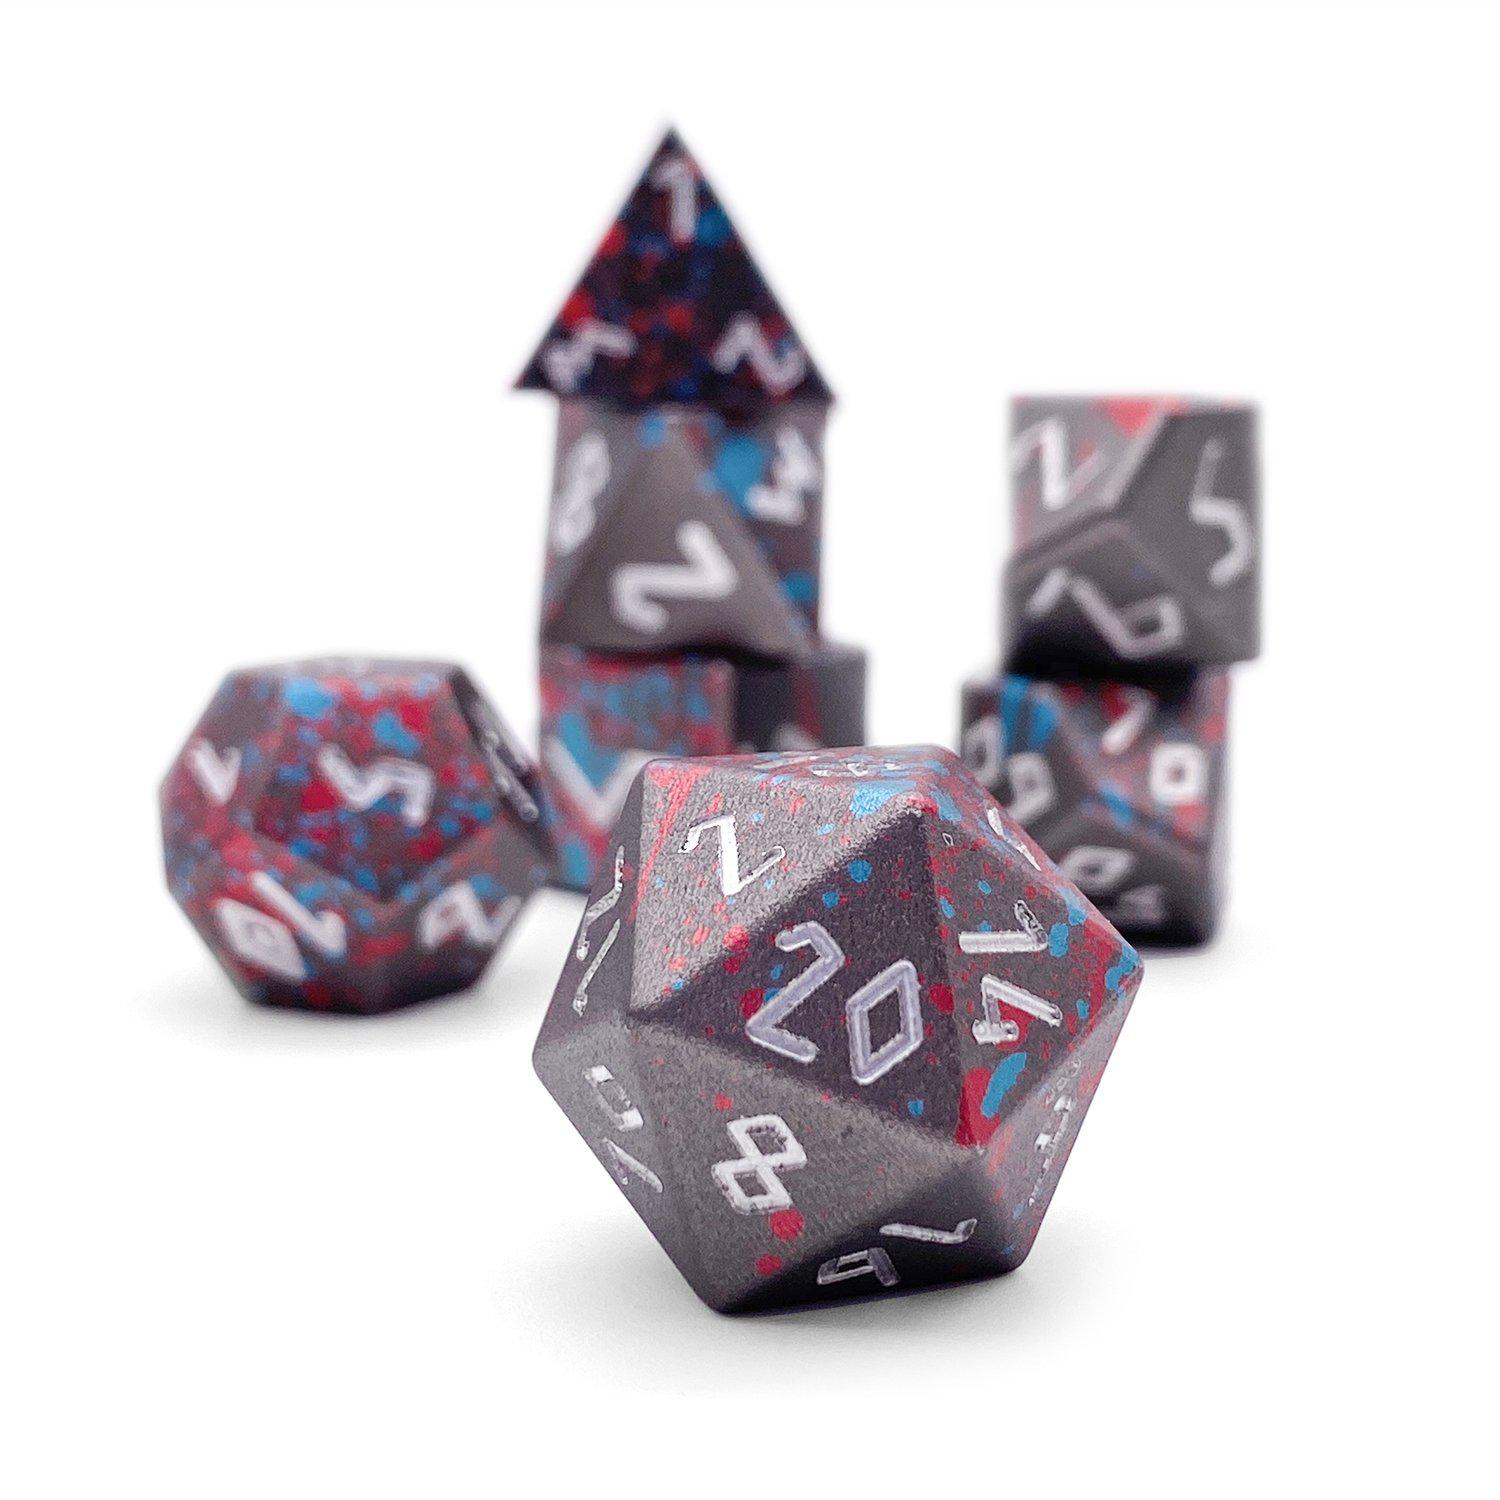 Giant Slayer - Wondrous Dice Set of 7 RPG Dice by Norse Foundry Precision Polyhedral Dice Set